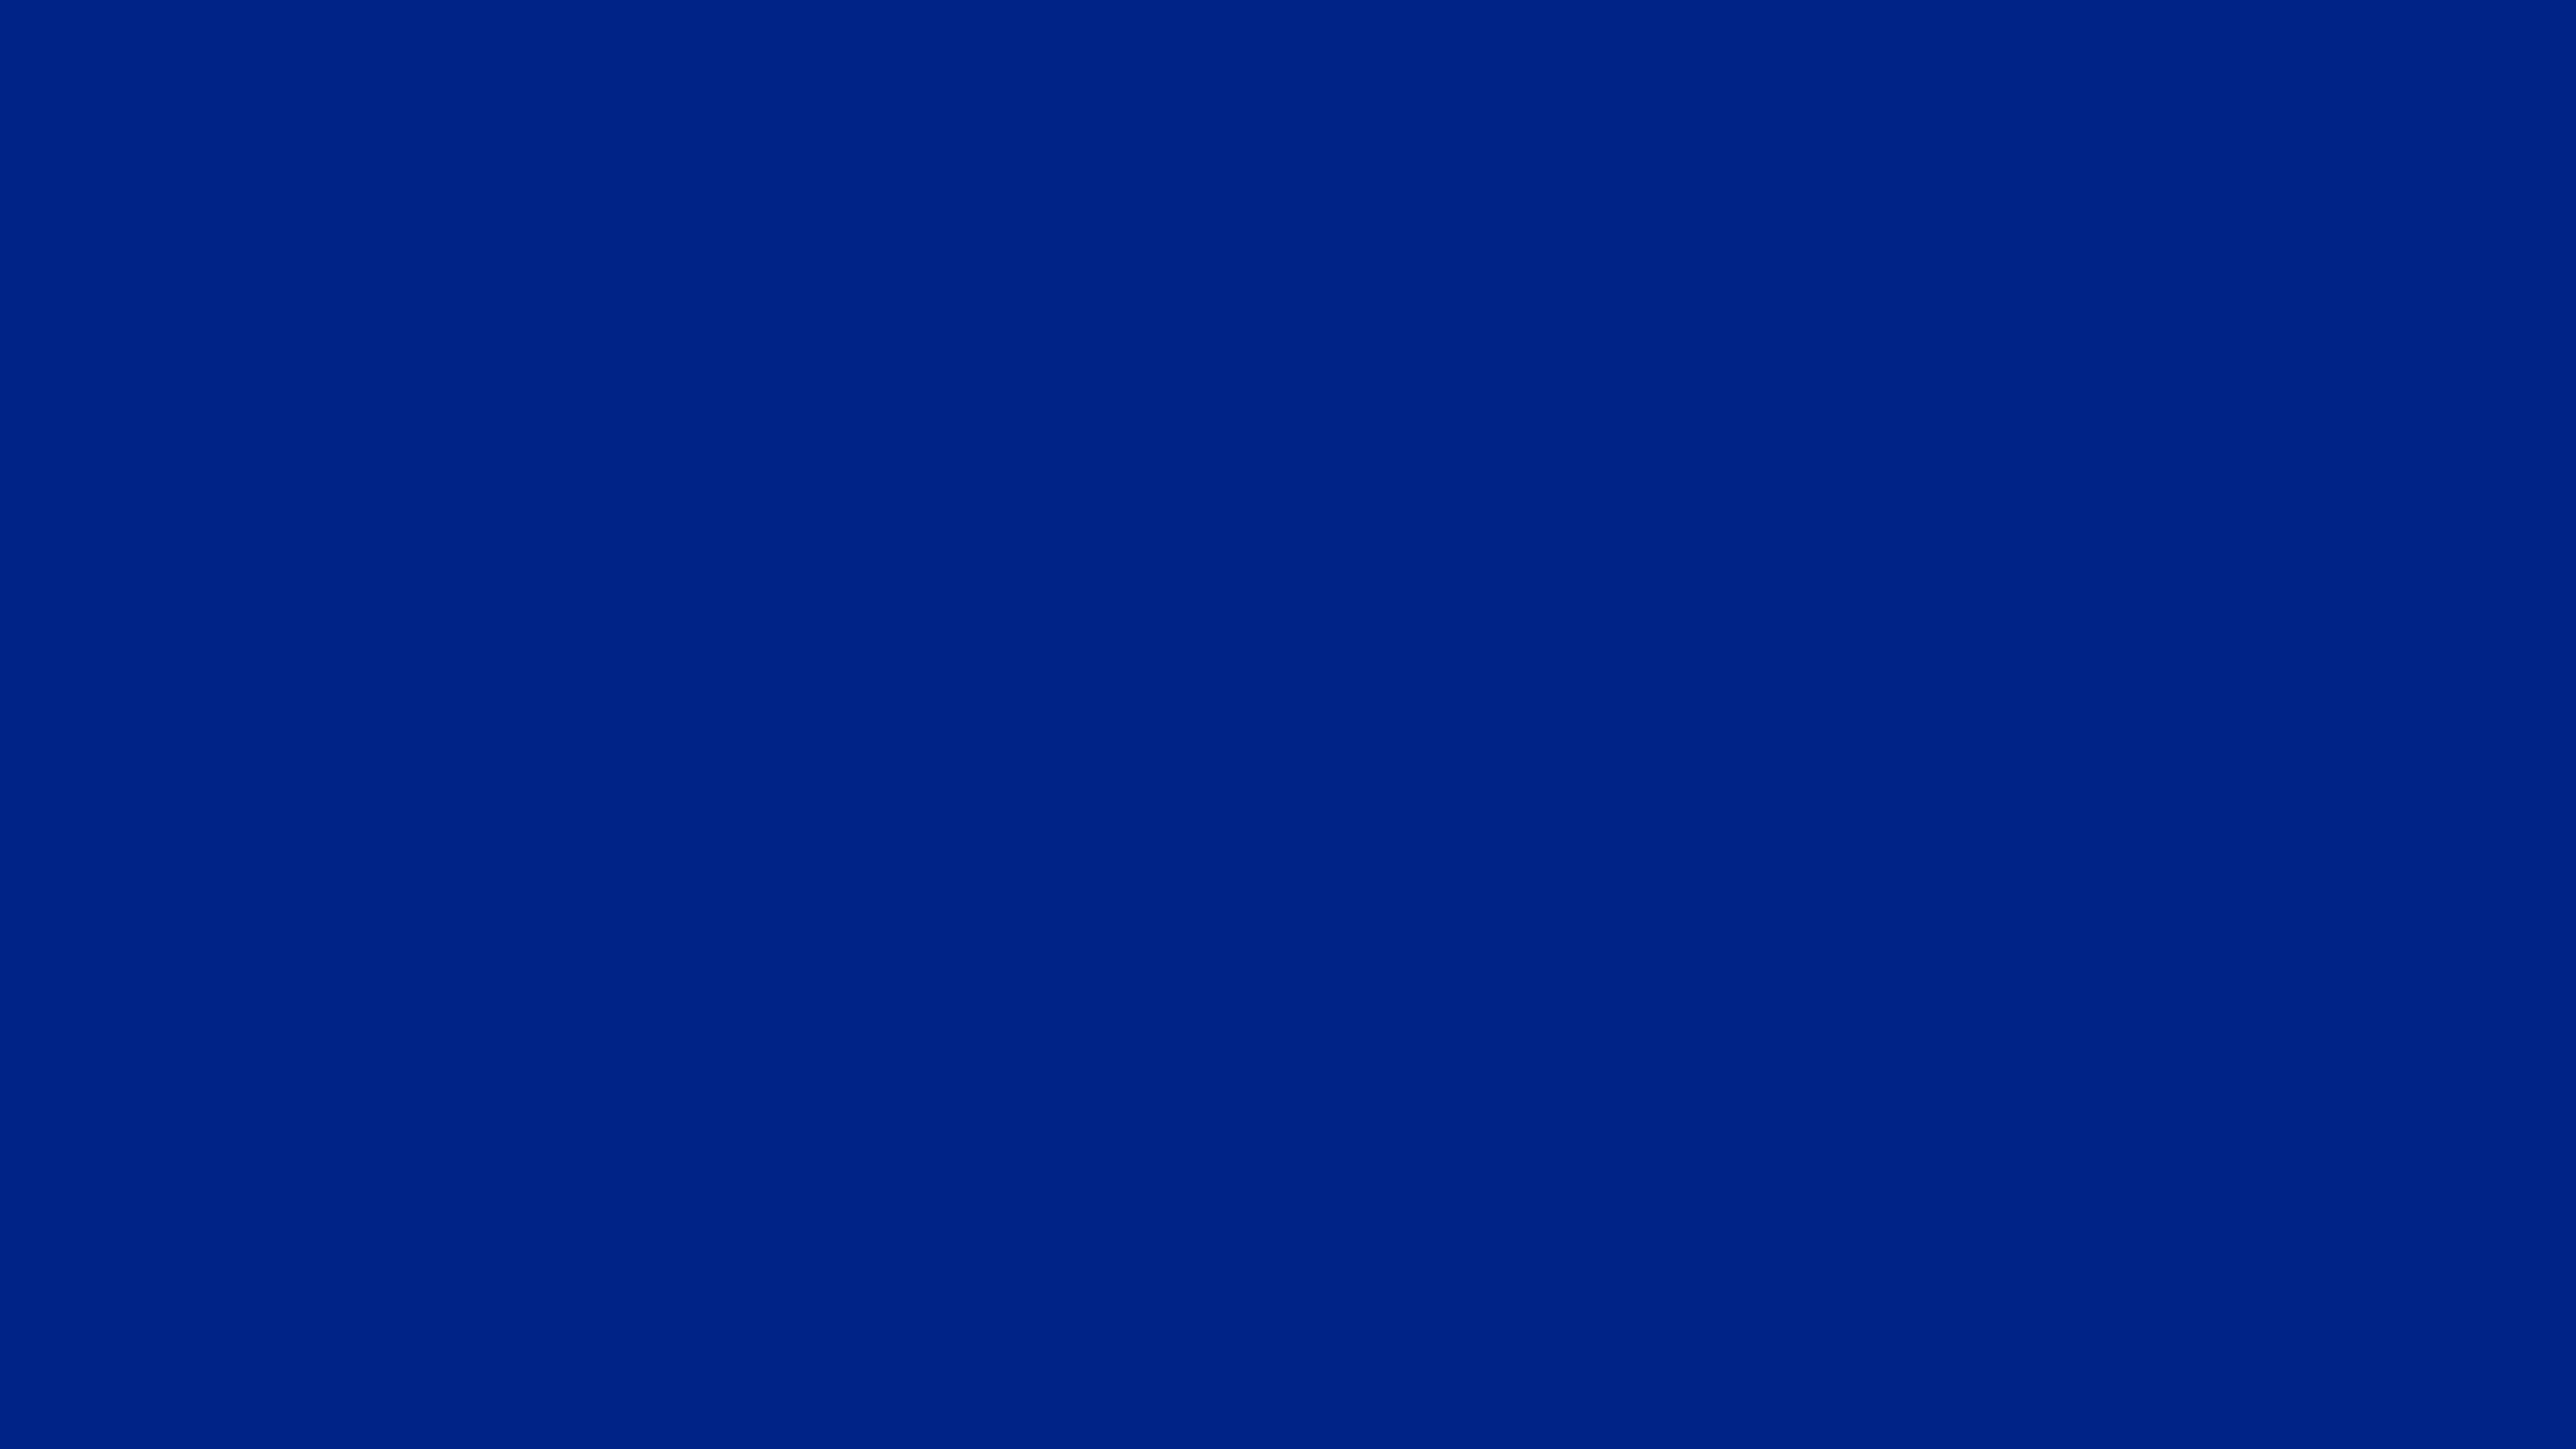 5120x2880 Resolution Blue Solid Color Background